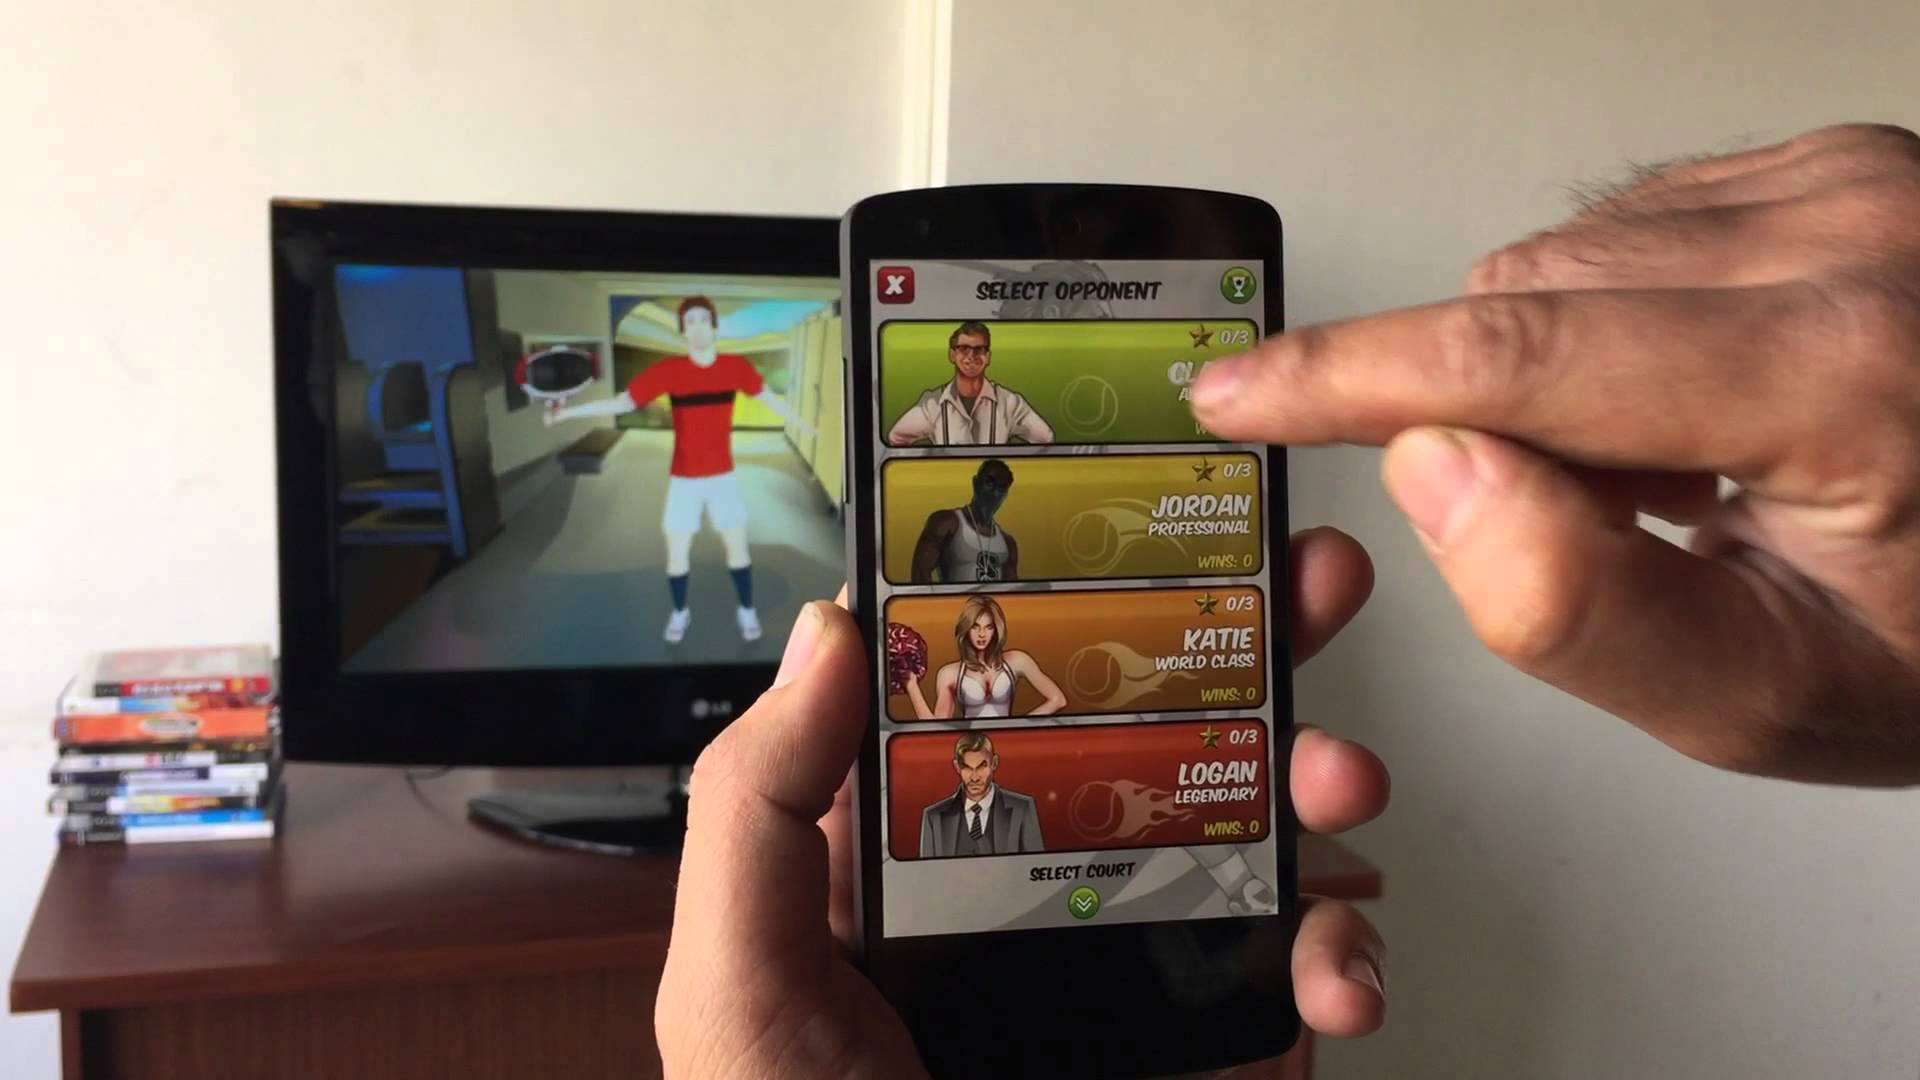 Motion Tennis Cast - Trailer for Android Smartphones & Chromecast